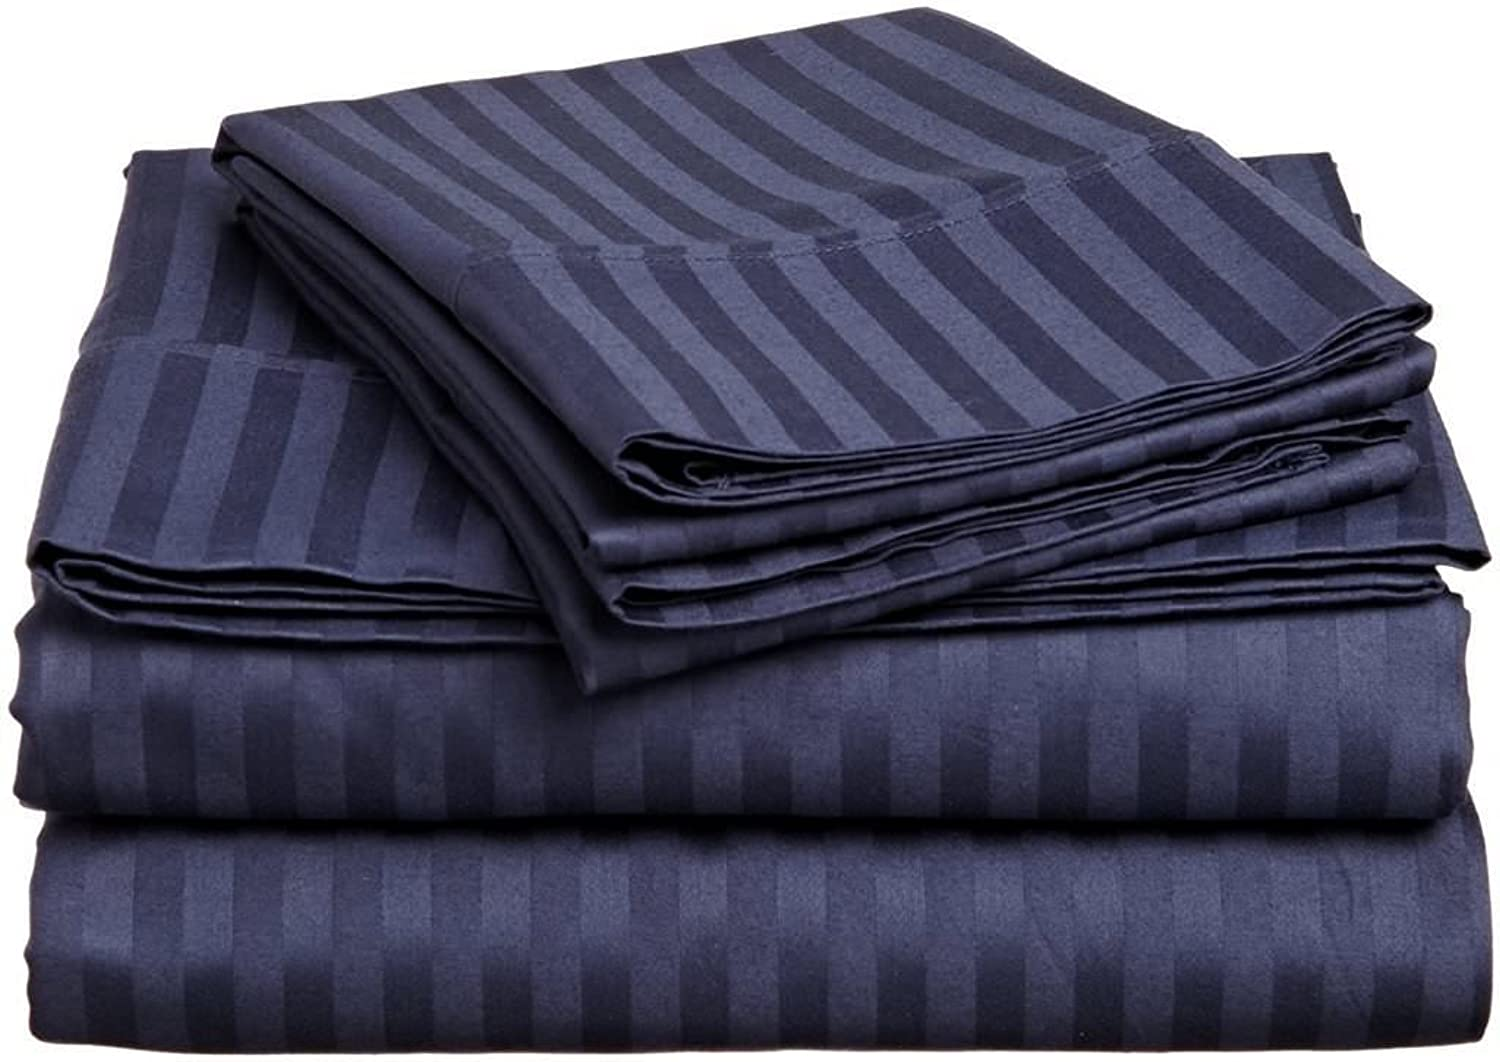 Aashirainwear 1 Fitted & 2 Pillowcase 100% Cotton 400-Thread-Count Full Size Navy bluee Stripe (15 Inch Drop)